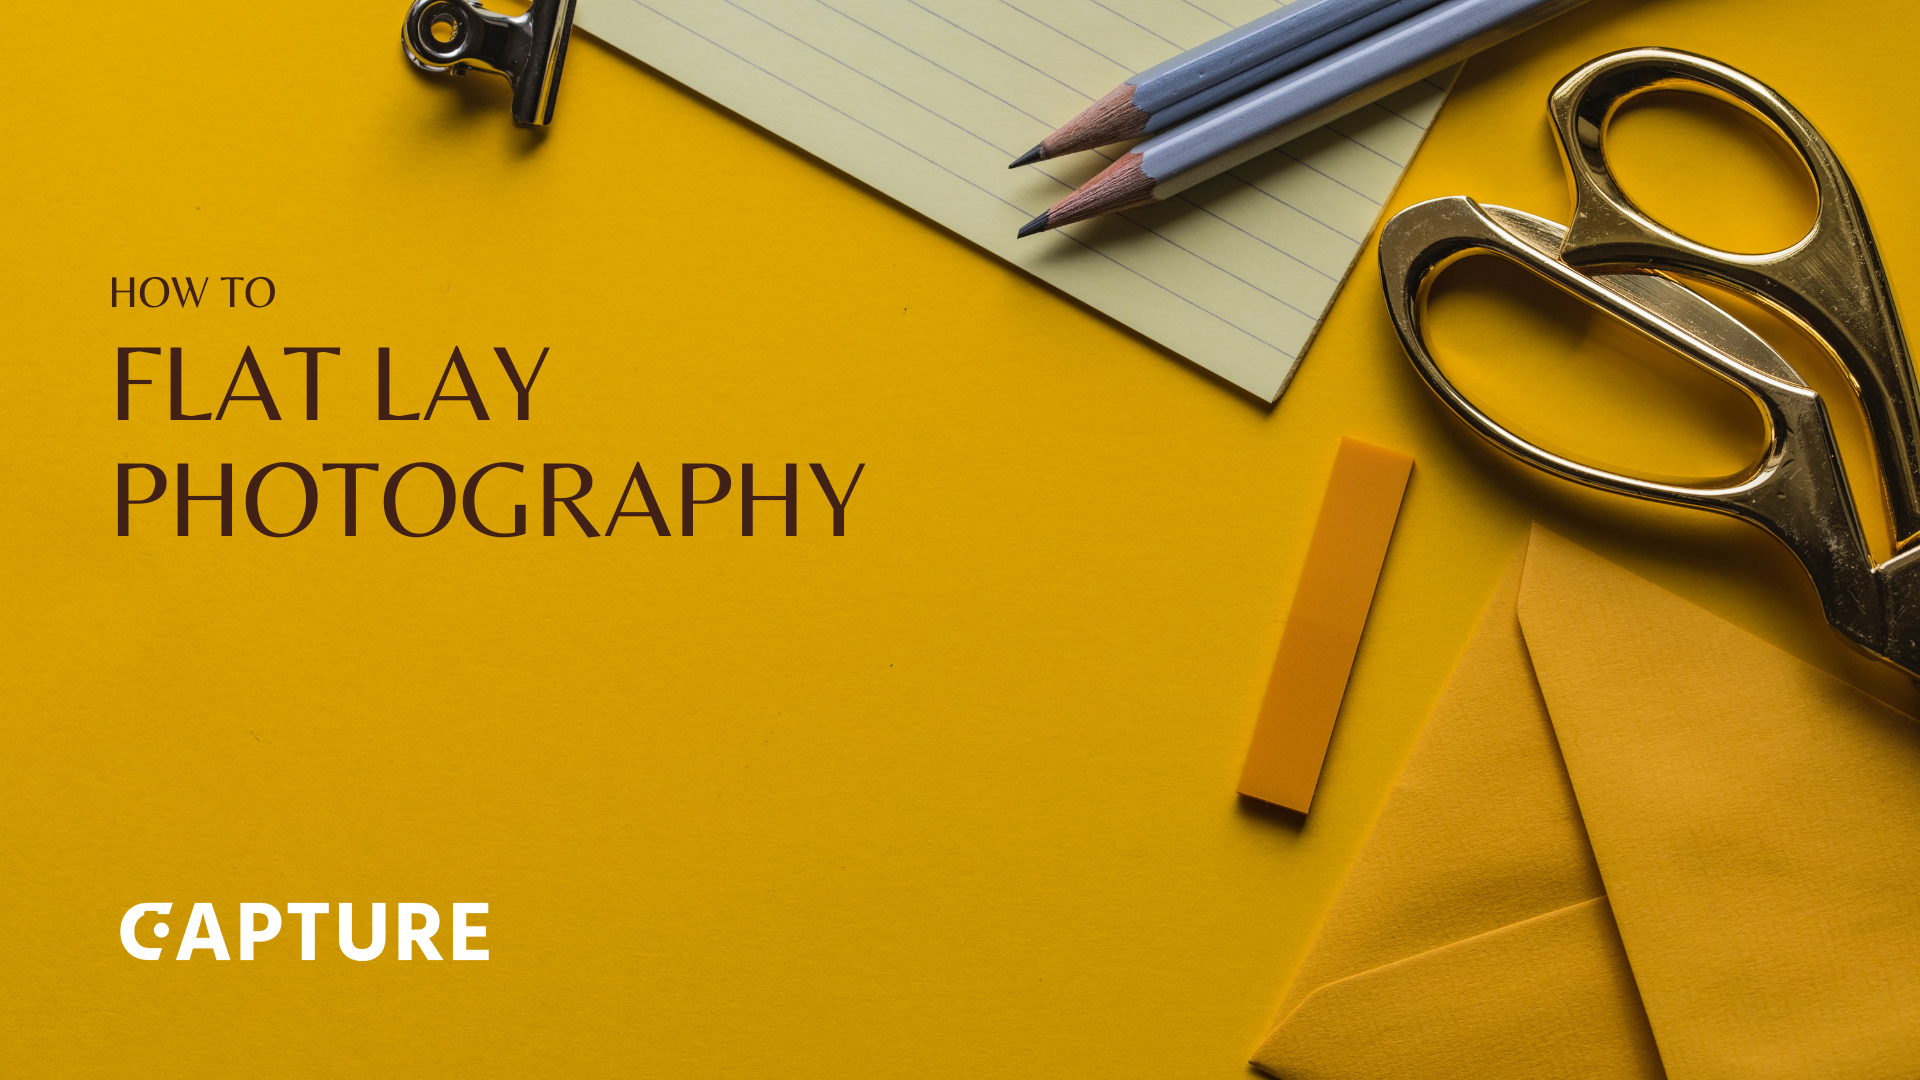 The Flat Lay Photography Guide